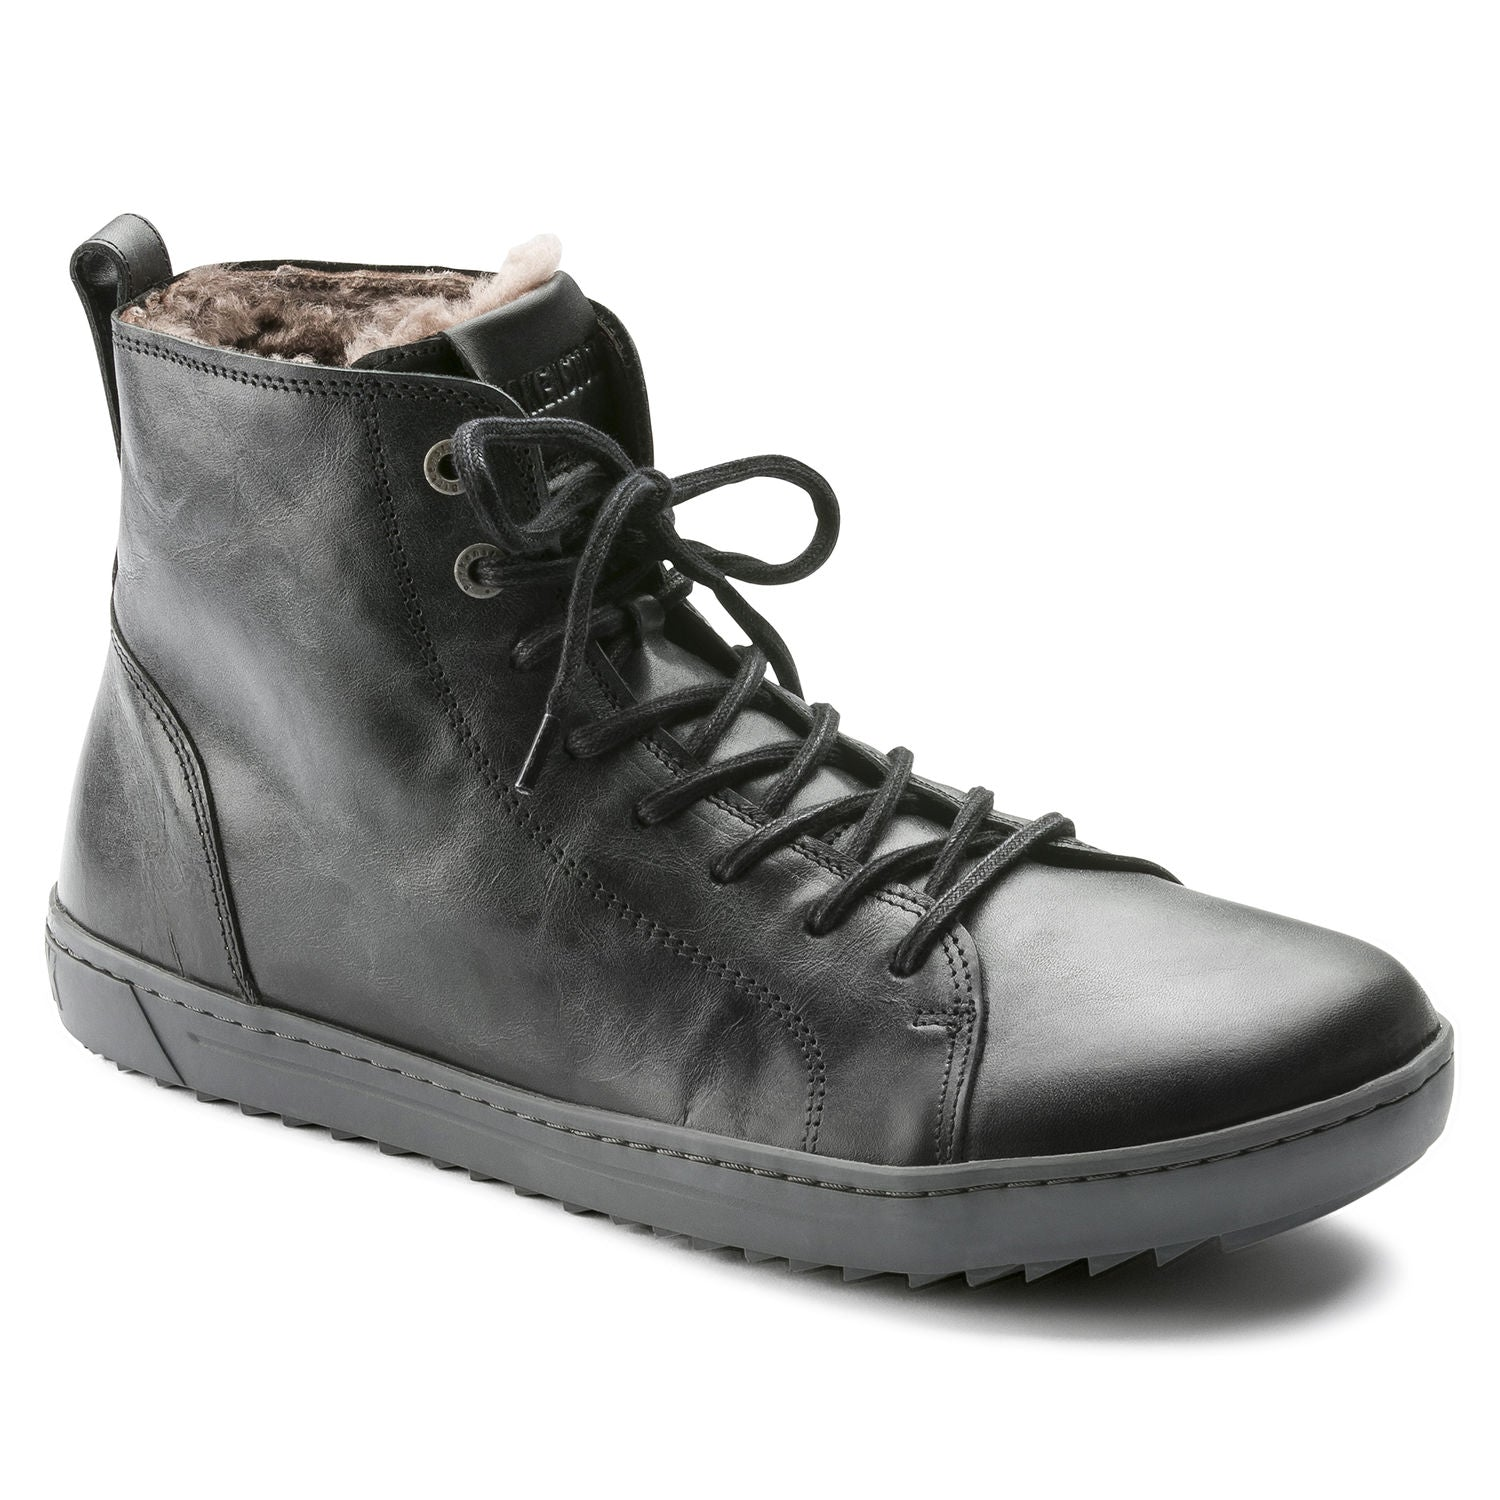 Bartlett Men - Aviator Black Leather Shearling